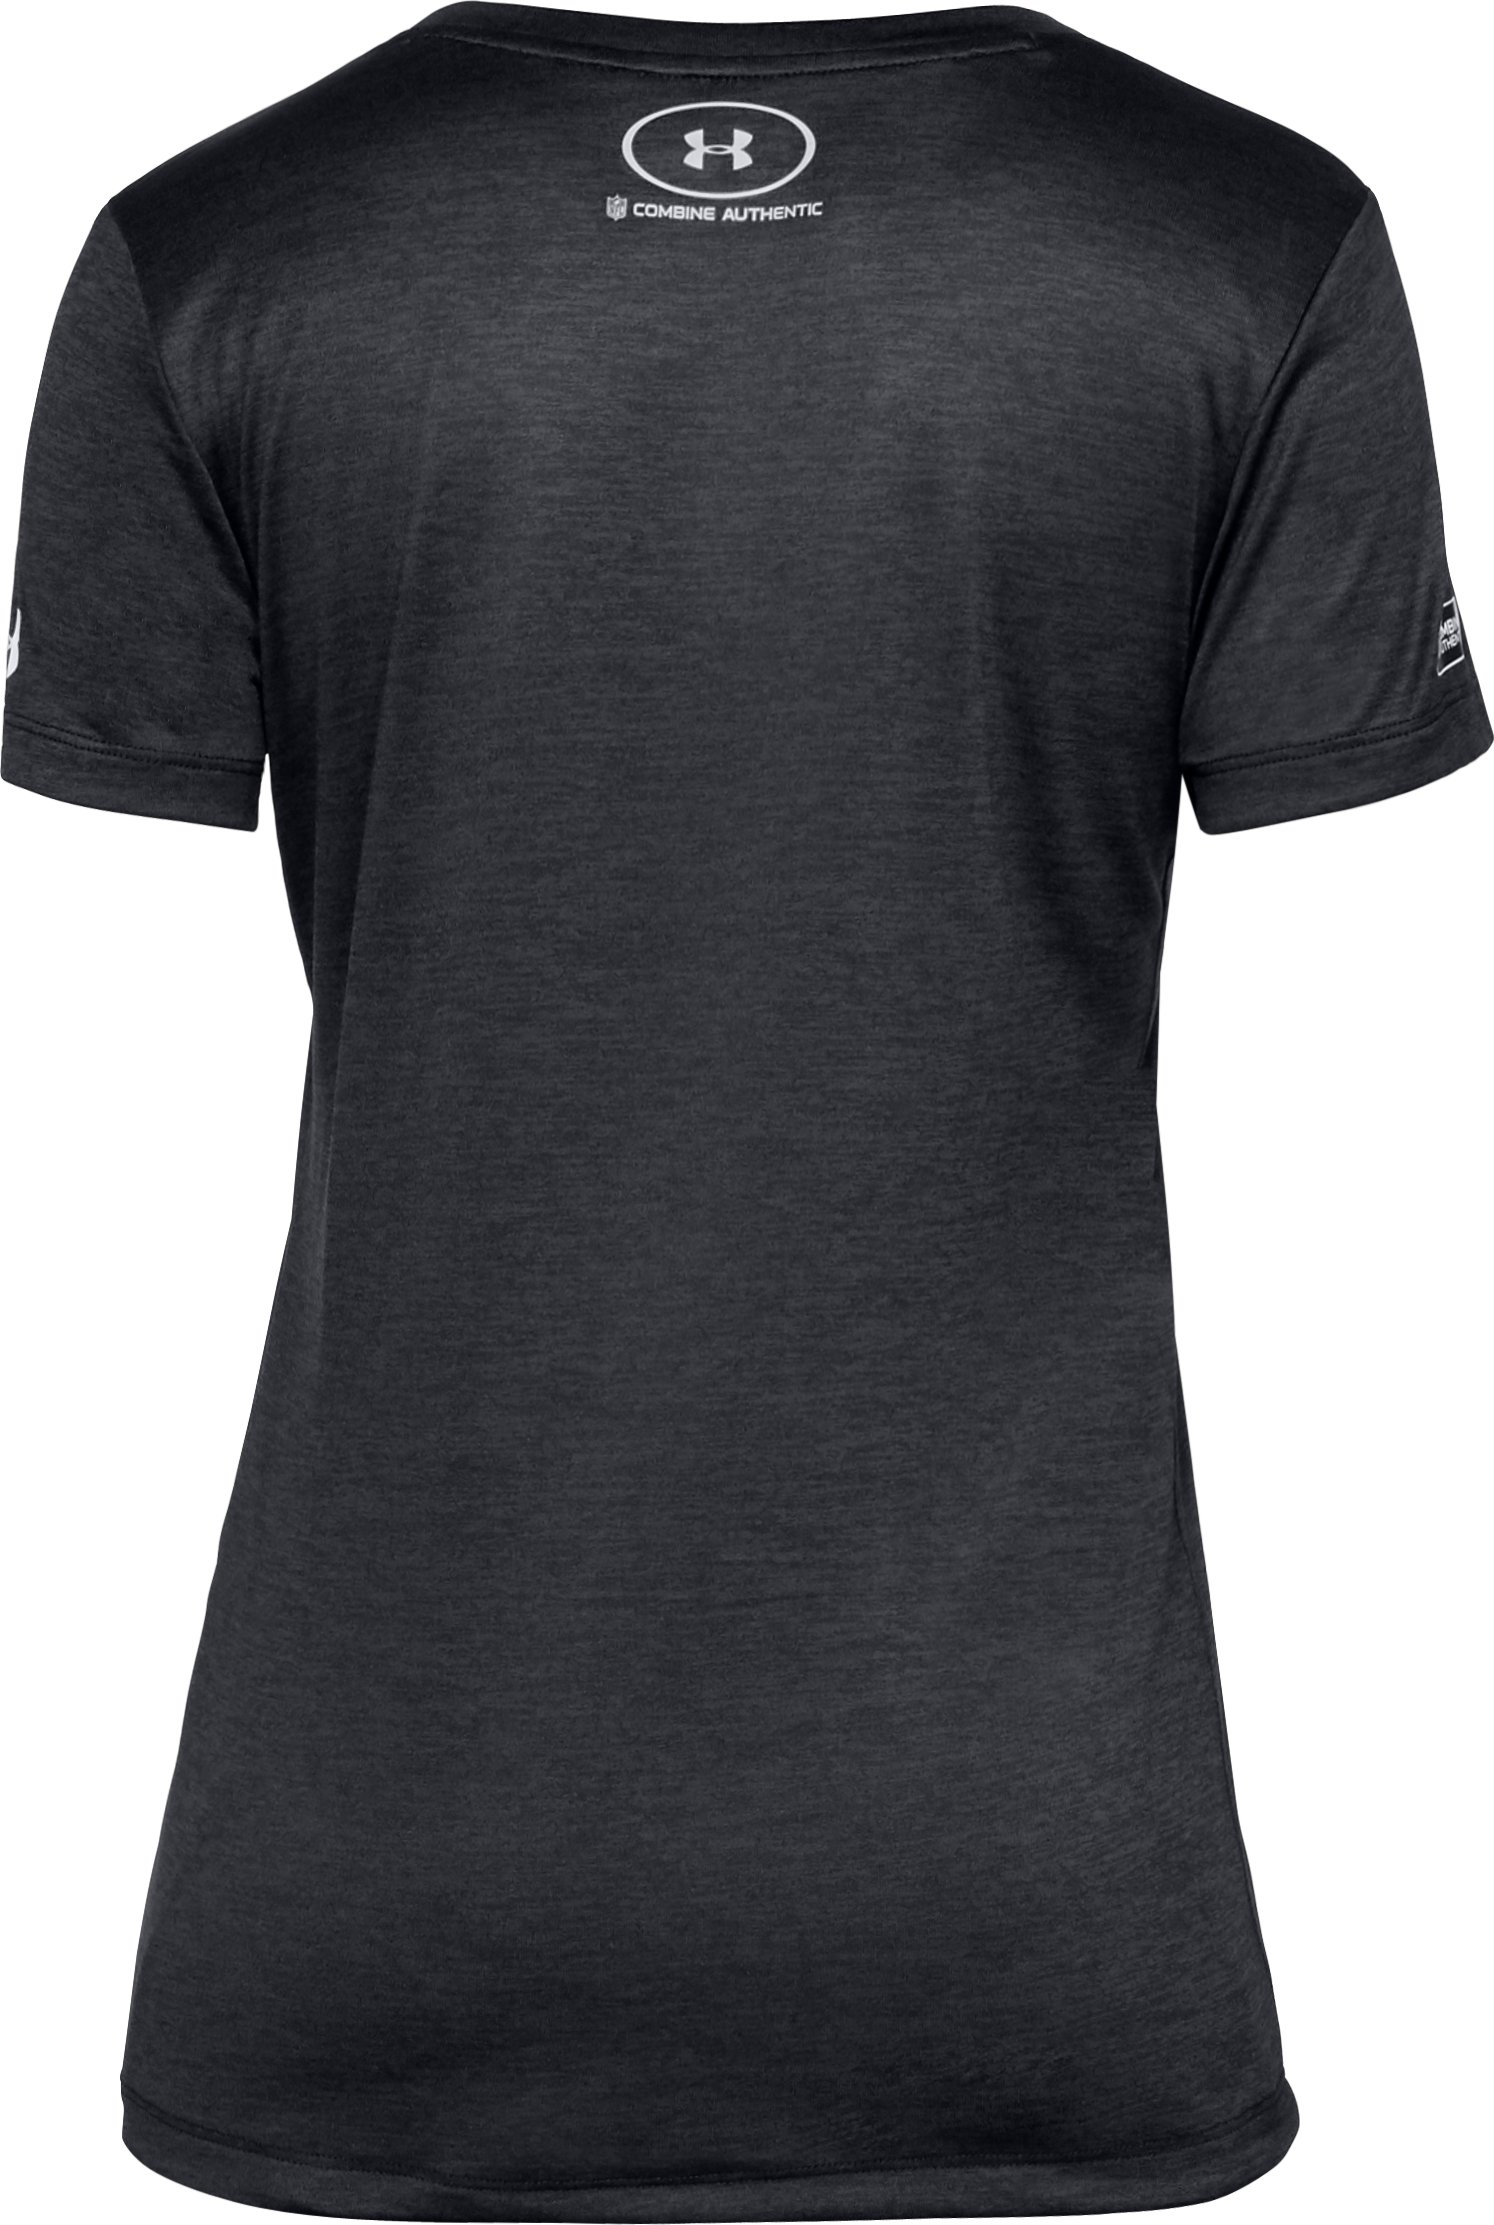 Women's NFL Combine Authentic UA Tech™ V-Neck - Twist Short Sleeve, Baltimore Ravens,